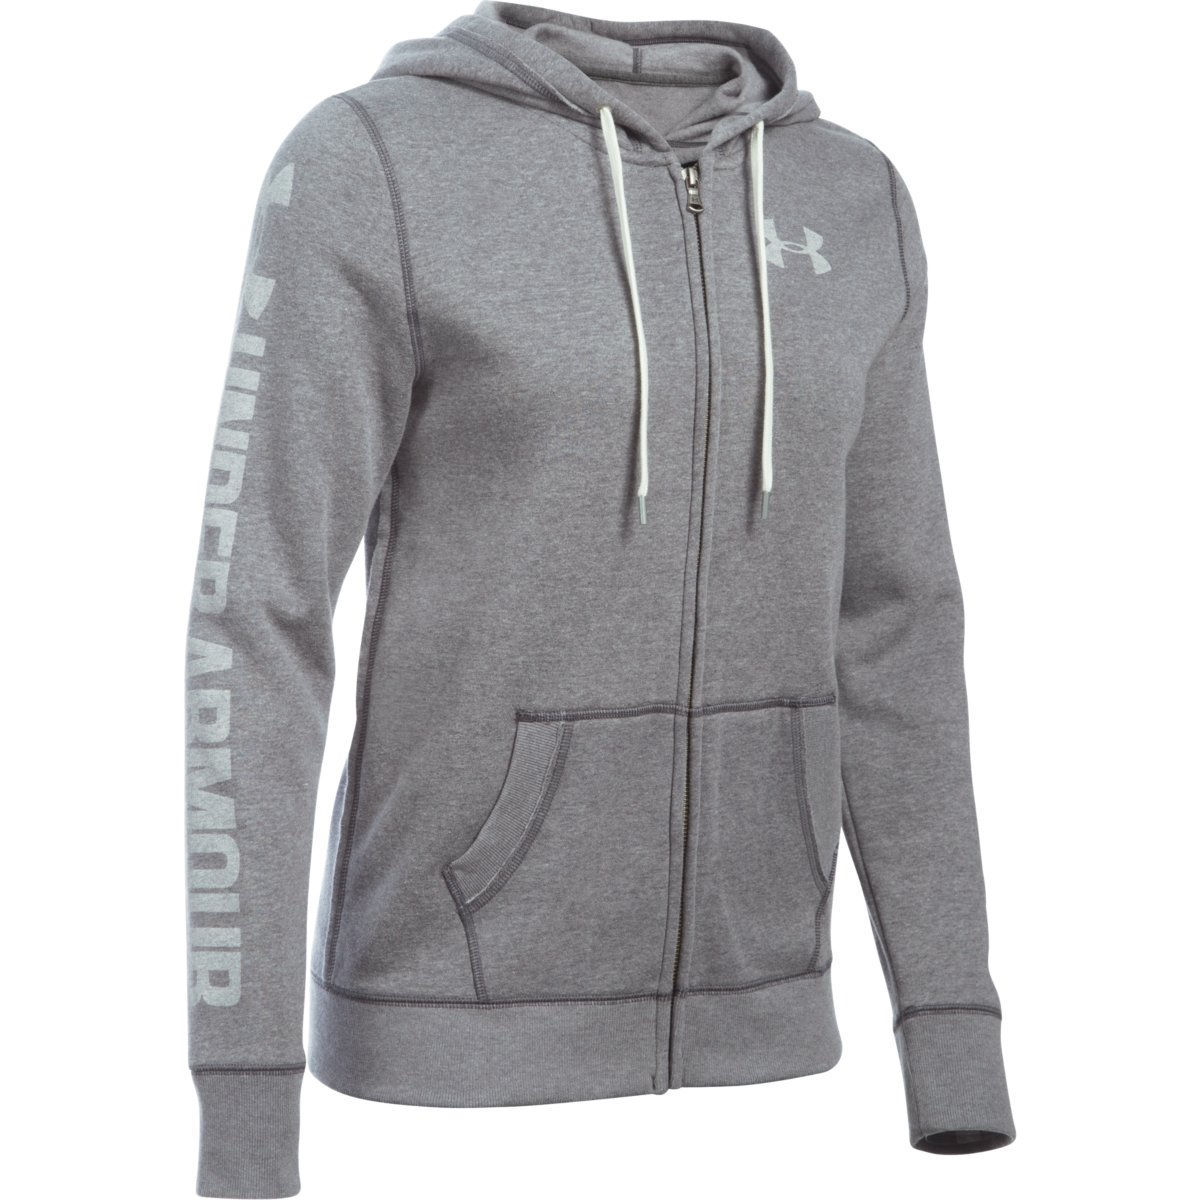 under armour jackets women s. under armour women\u0027s favourite fleece hoody (full zip, aw16) jackets women s